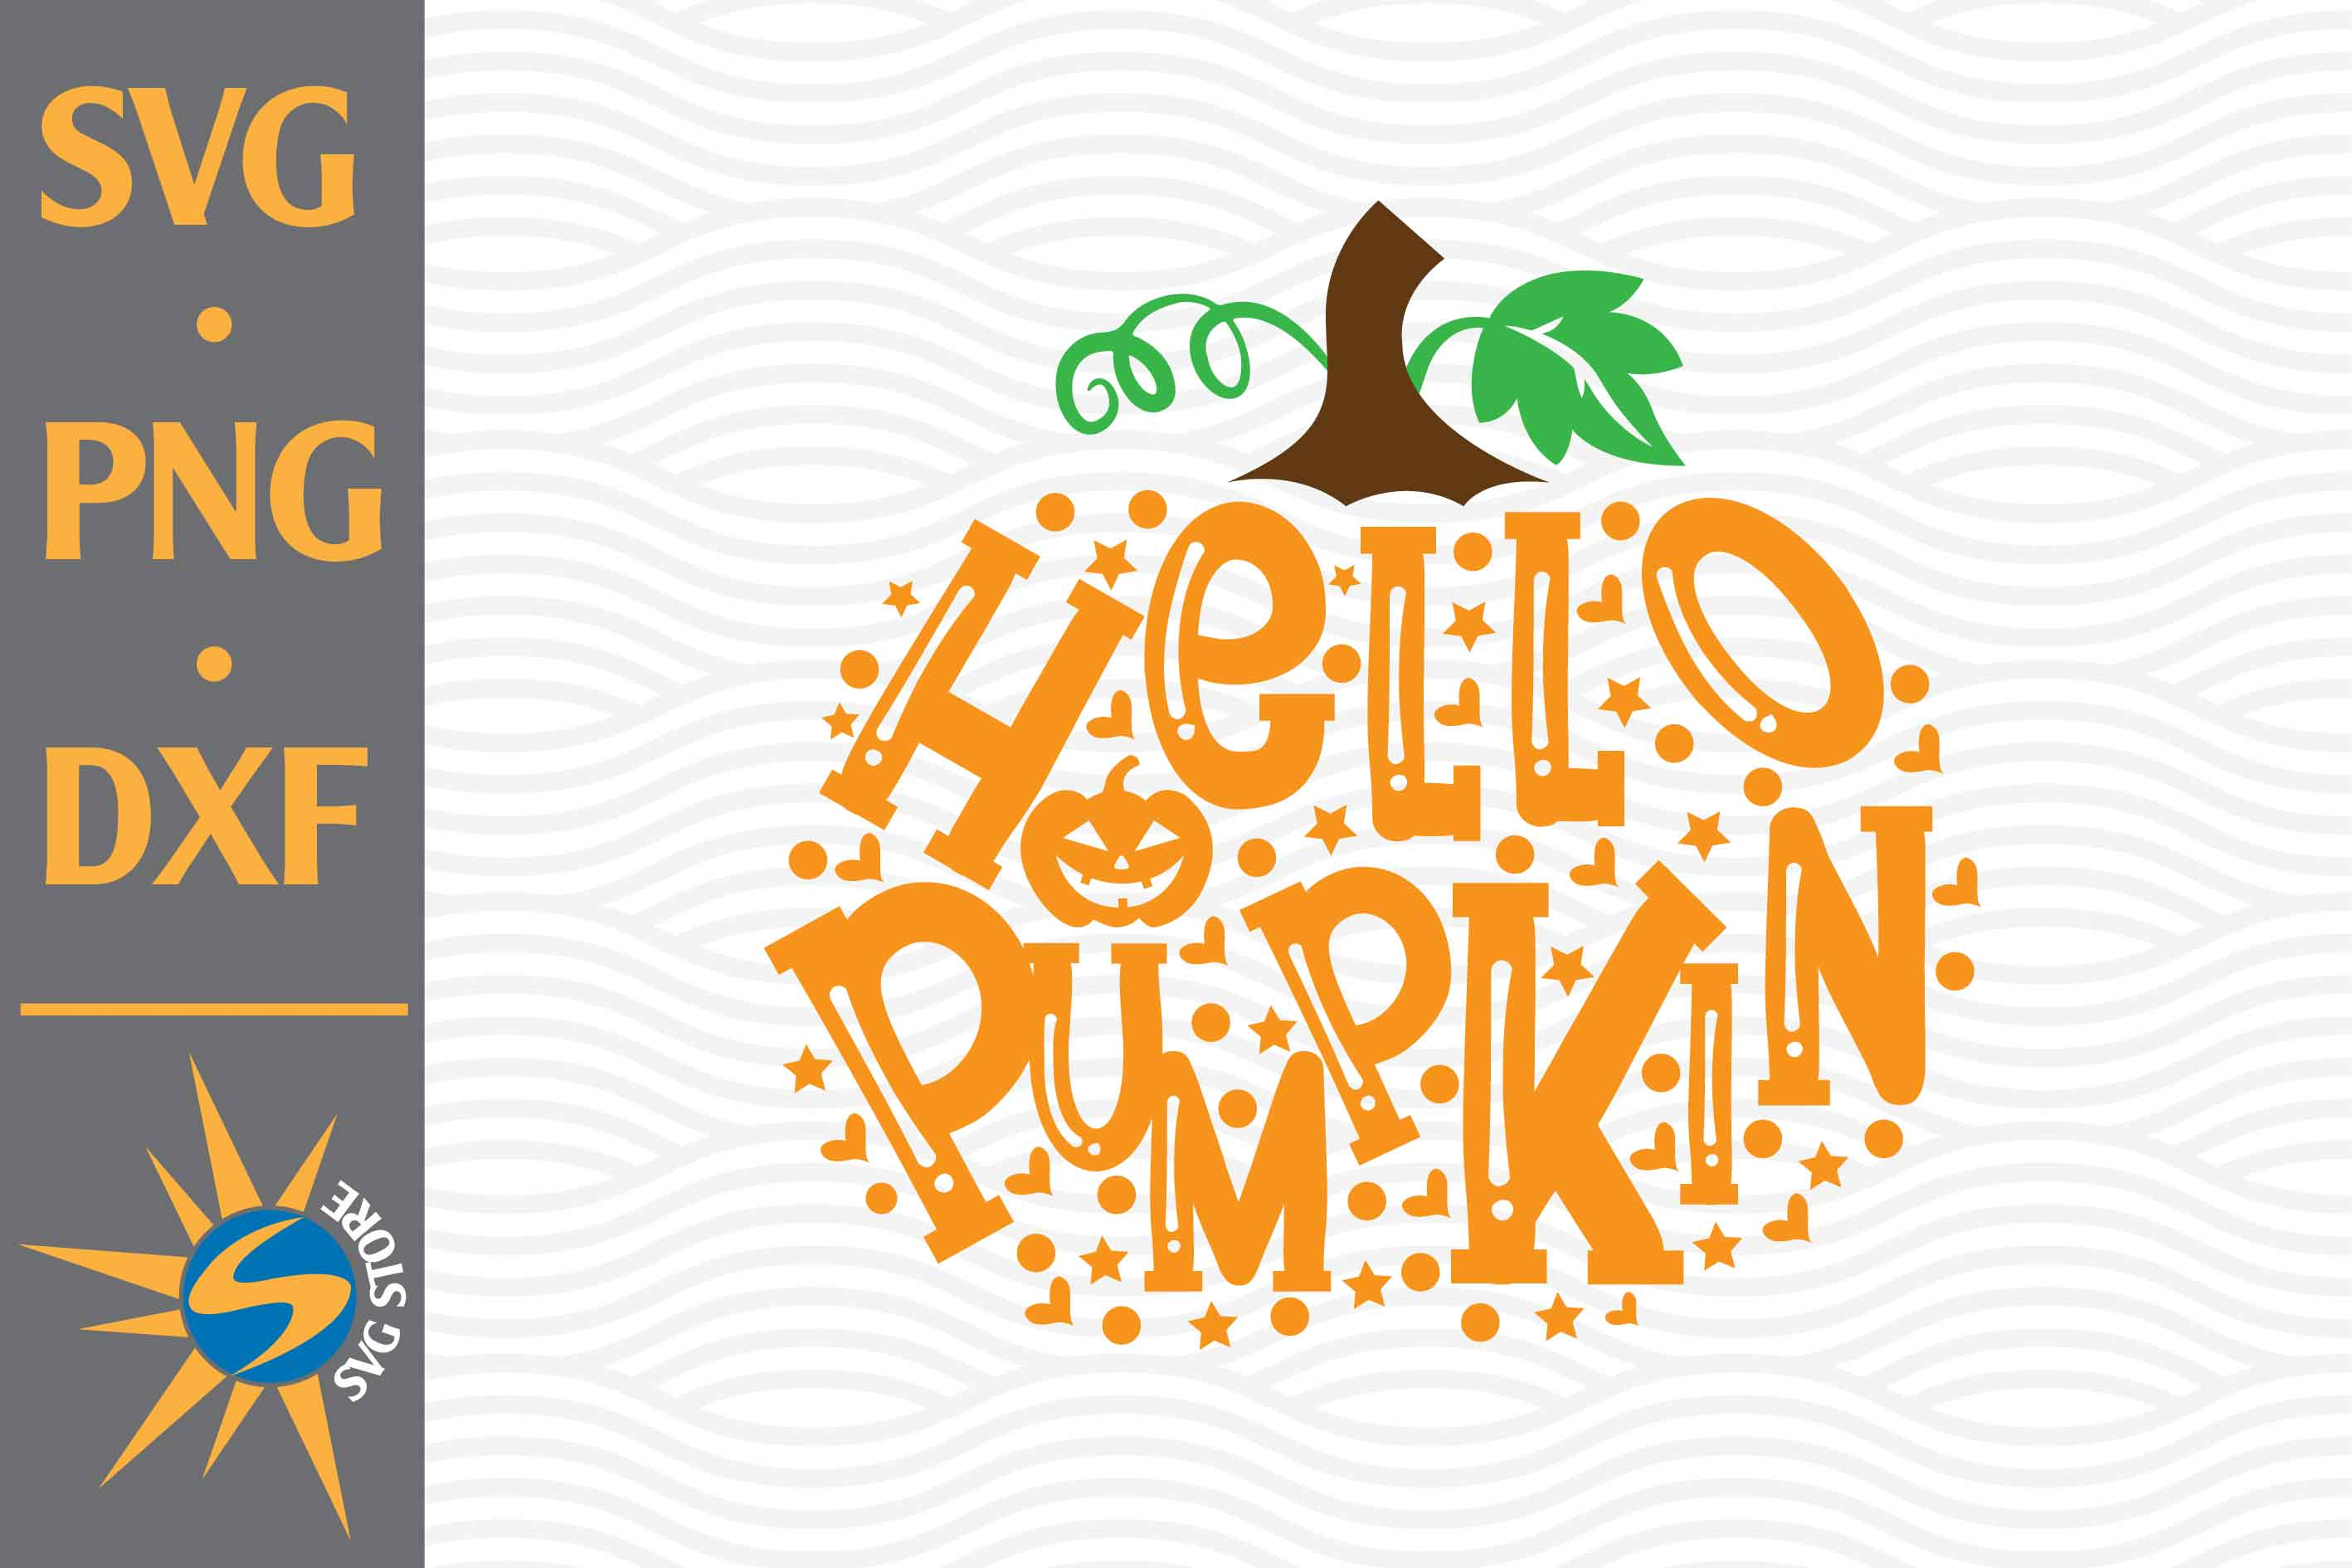 Marathi Graphic Banner 15 August Banner Background Free Svg Cut Files Create Your Diy Projects Using Your Cricut Explore Silhouette And More The Free Cut Files Include Svg Dxf Eps And